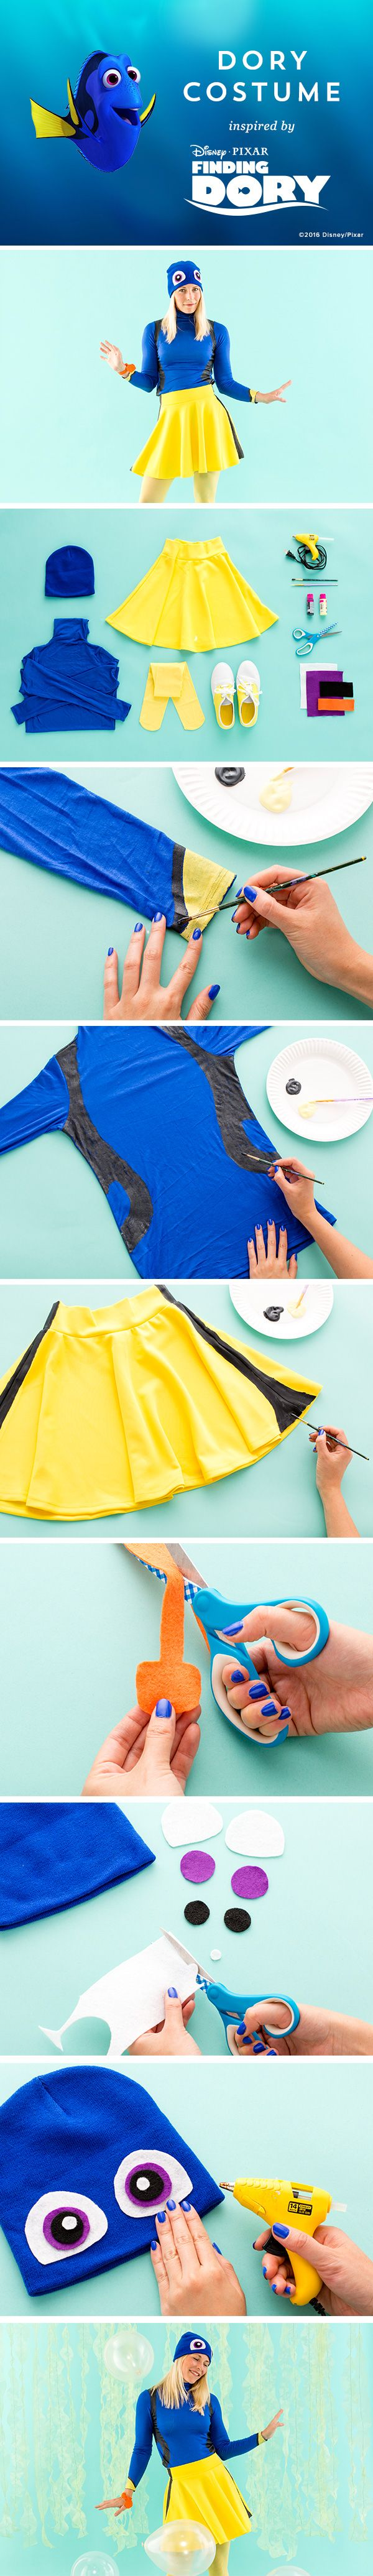 This DIY Finding Dory costume is BEYOND cute! #partner